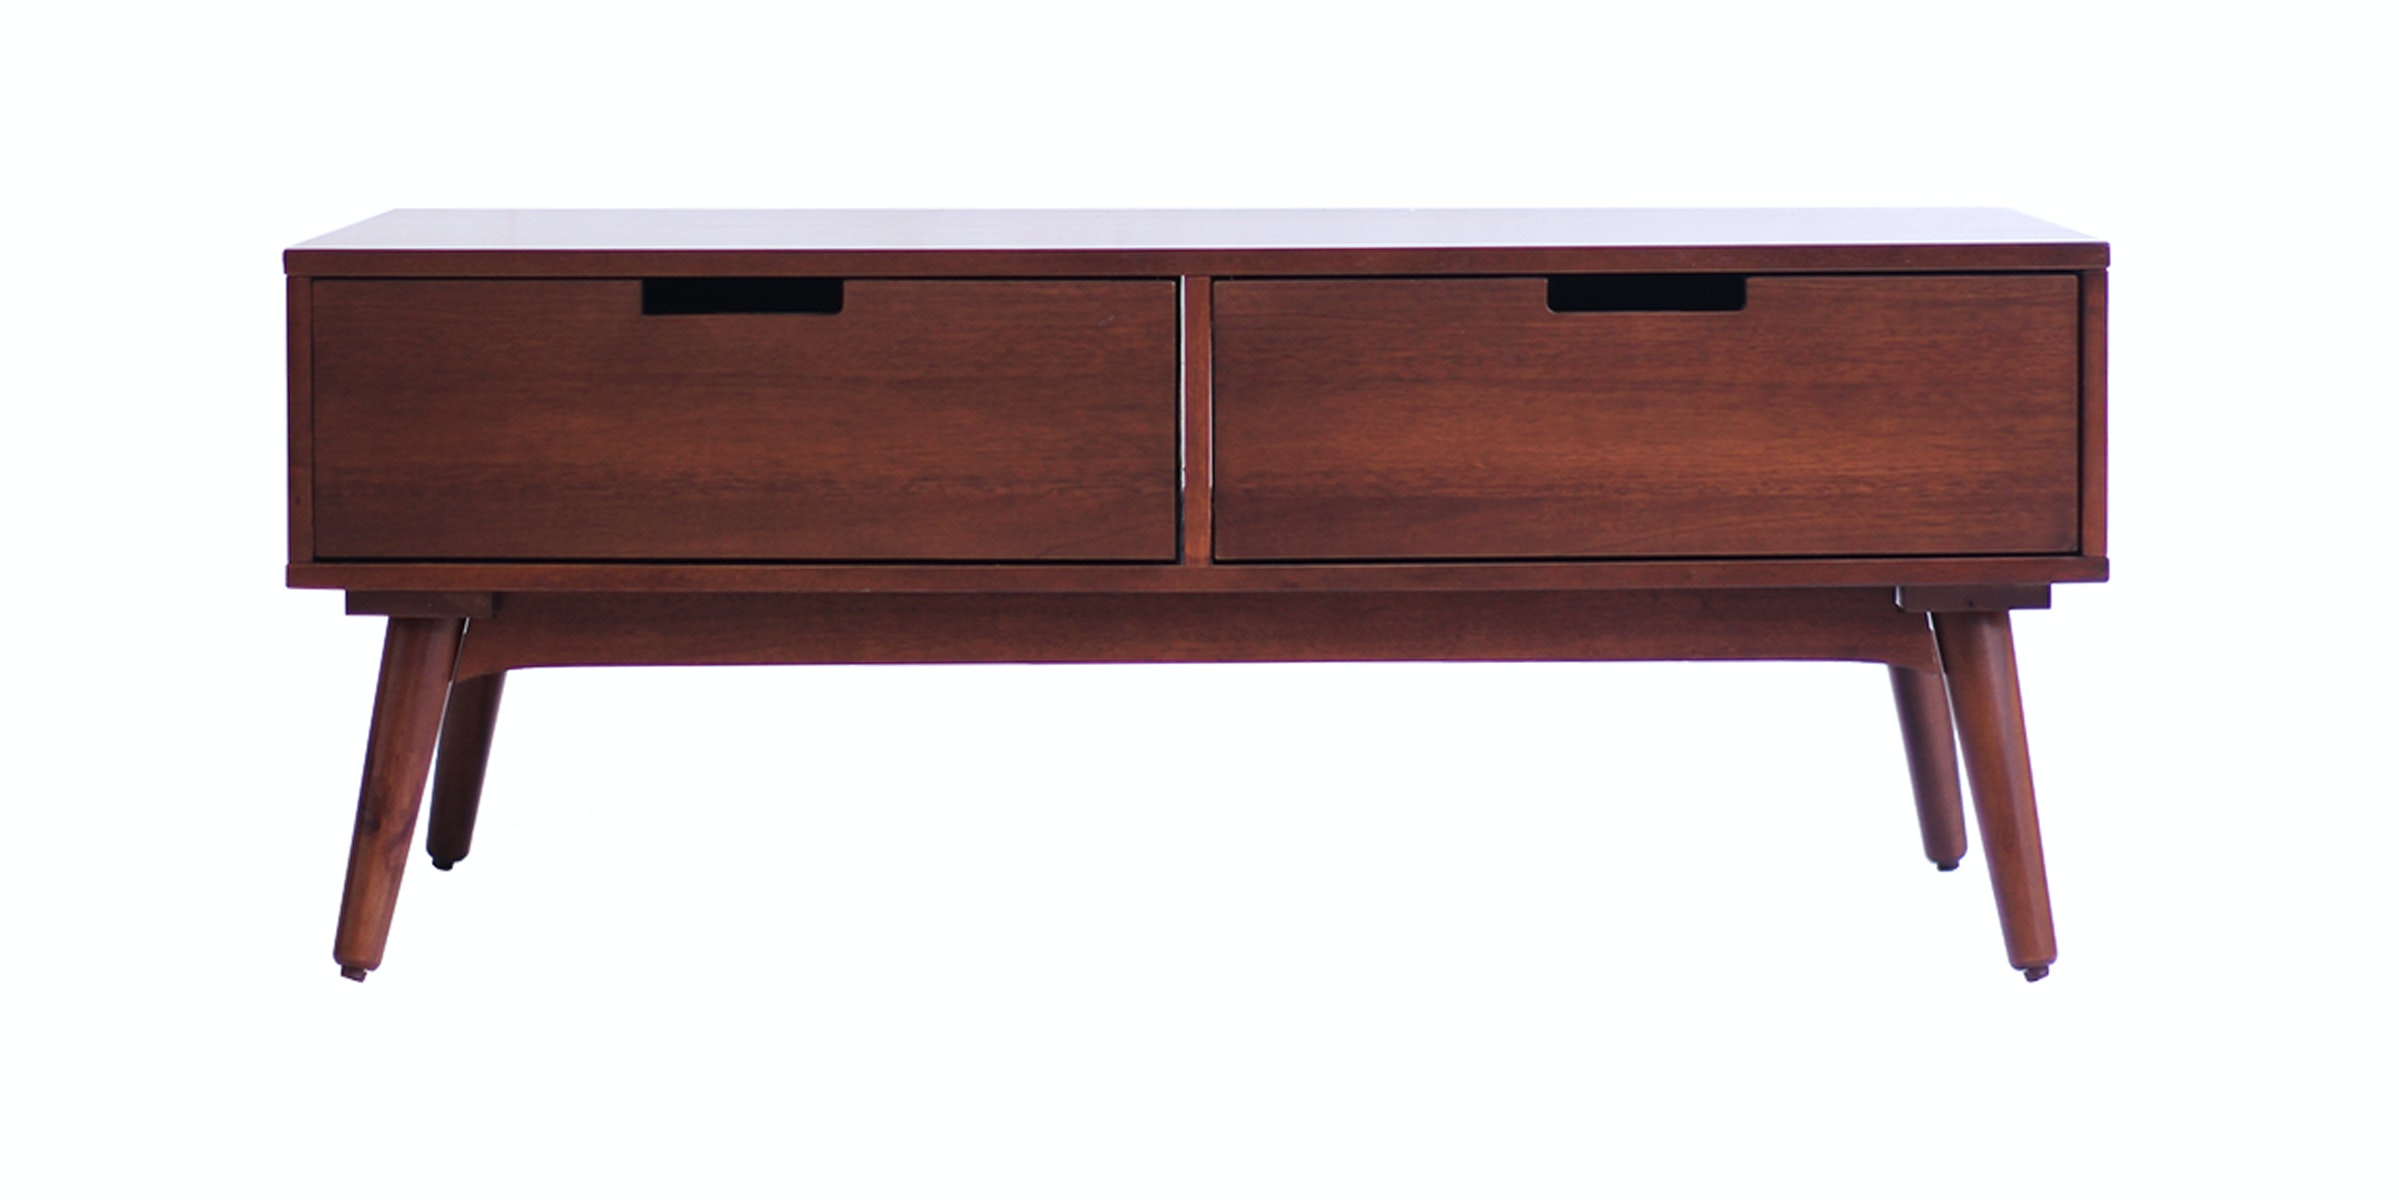 KANA FURNITURE Ct Rondane With Drawer Skandi Walnut Integ